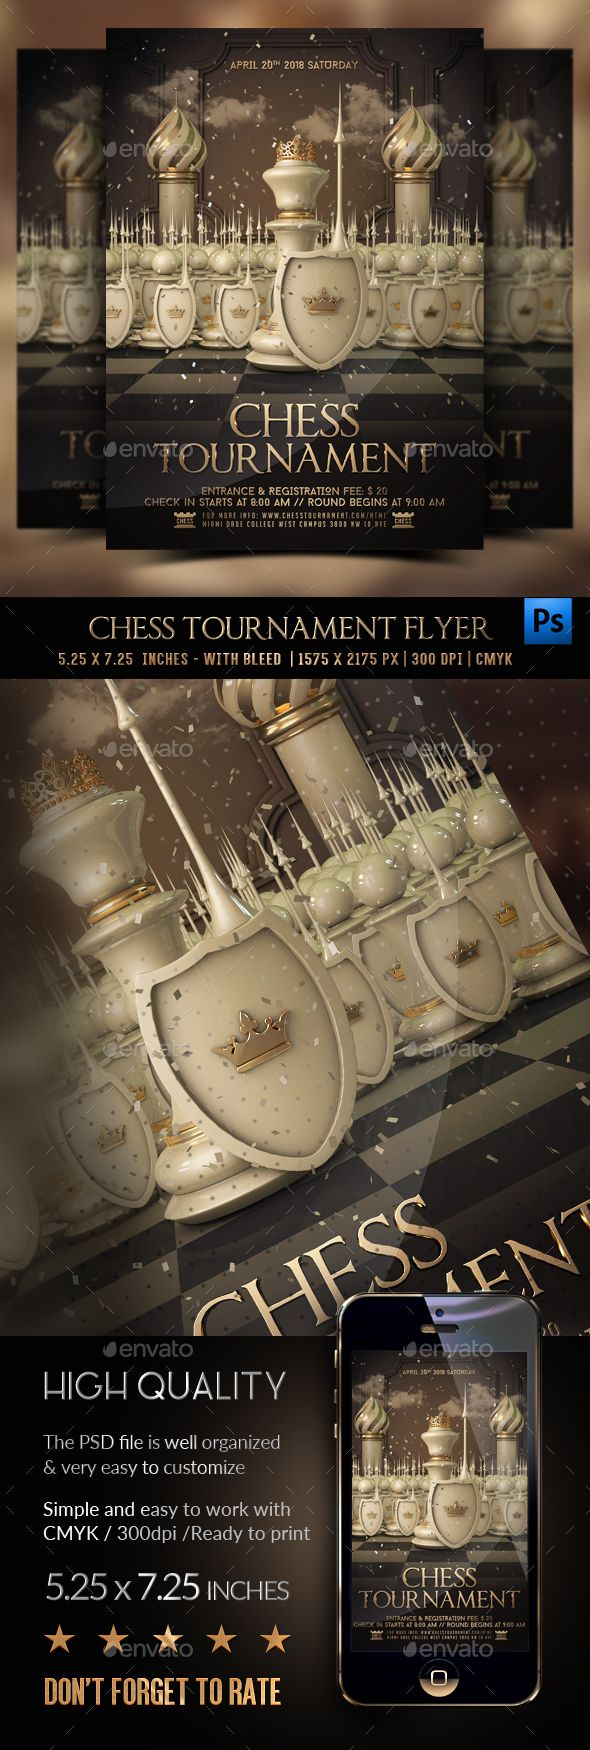 Chess Tournament Flyer — PSD gold board game